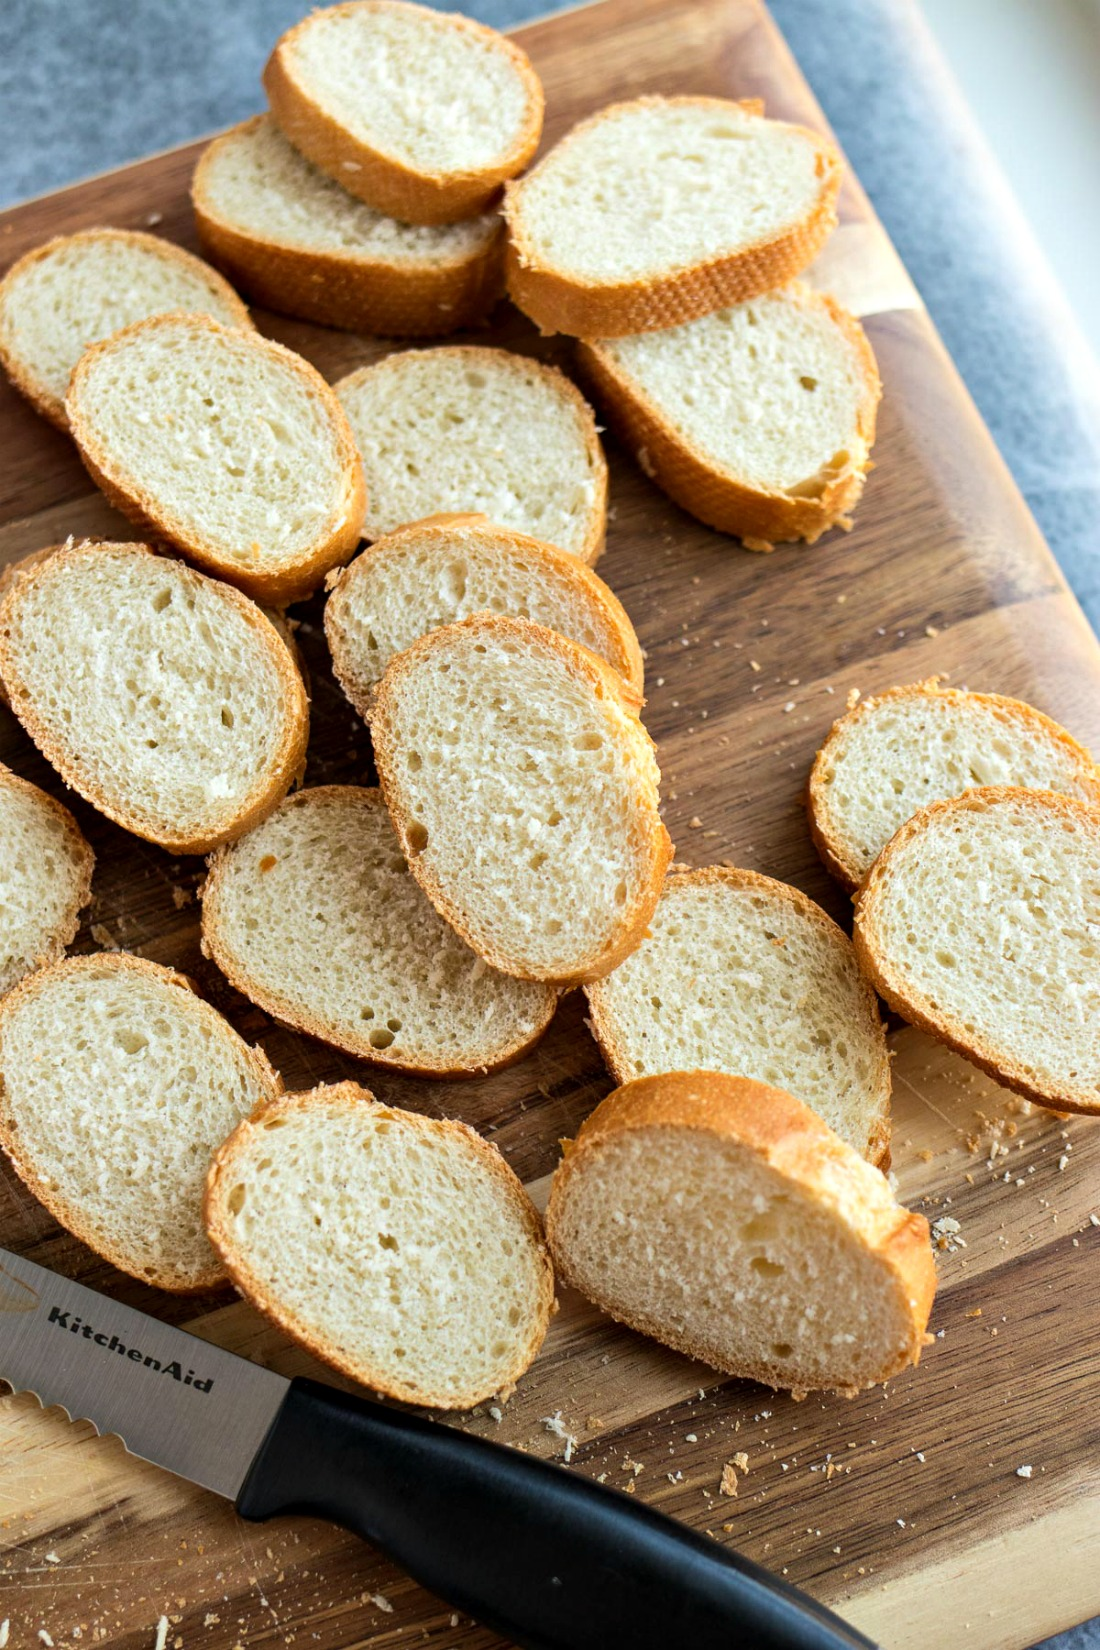 Small baguette slices